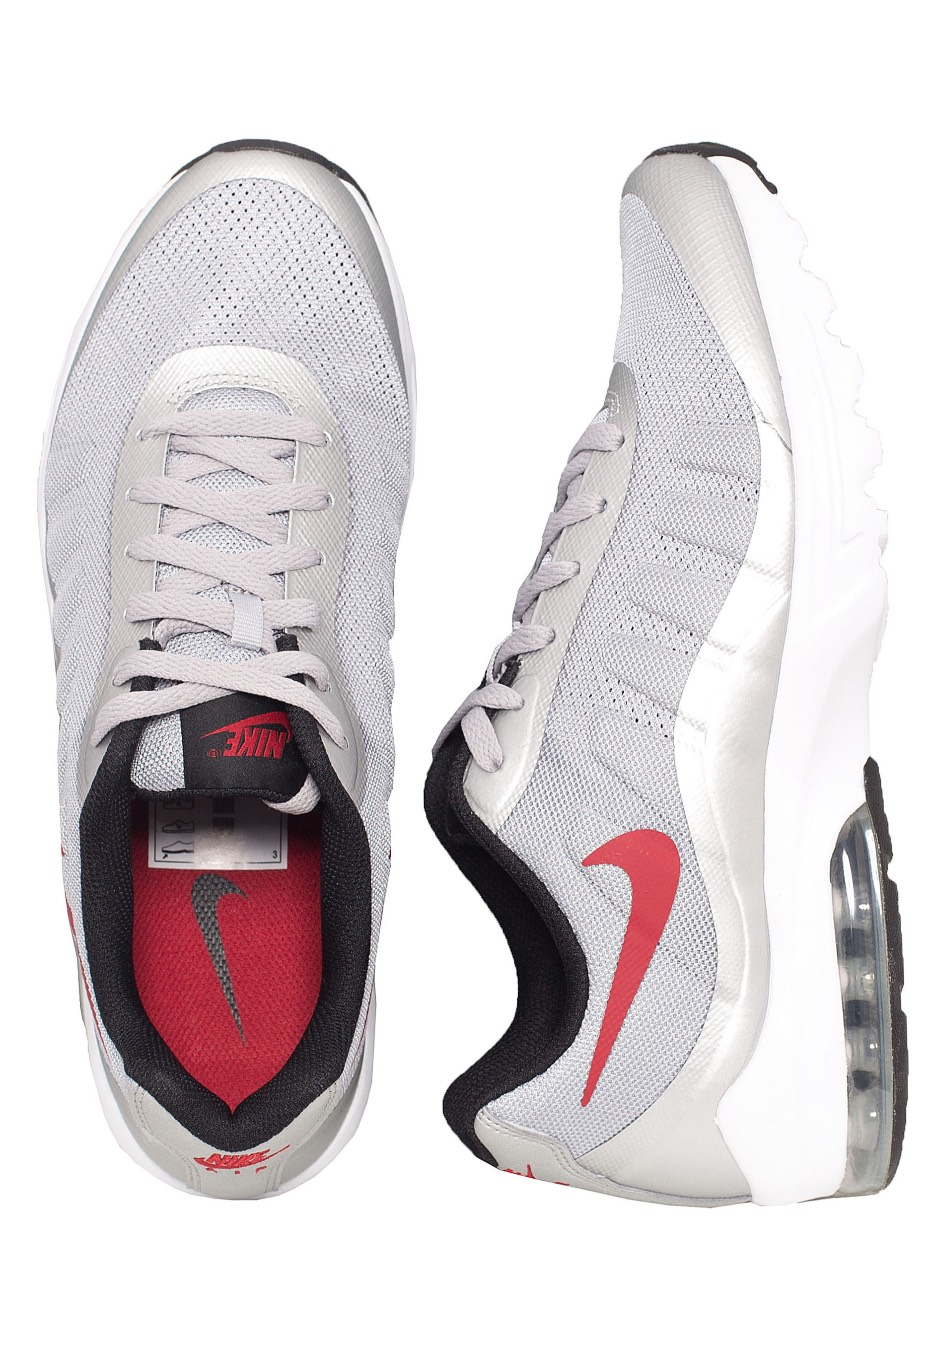 half off a5112 d31d7 Nike - Air Max InvigorWolf Grey Varsity Red Black White - Shoes - Impericon.com  Worldwide